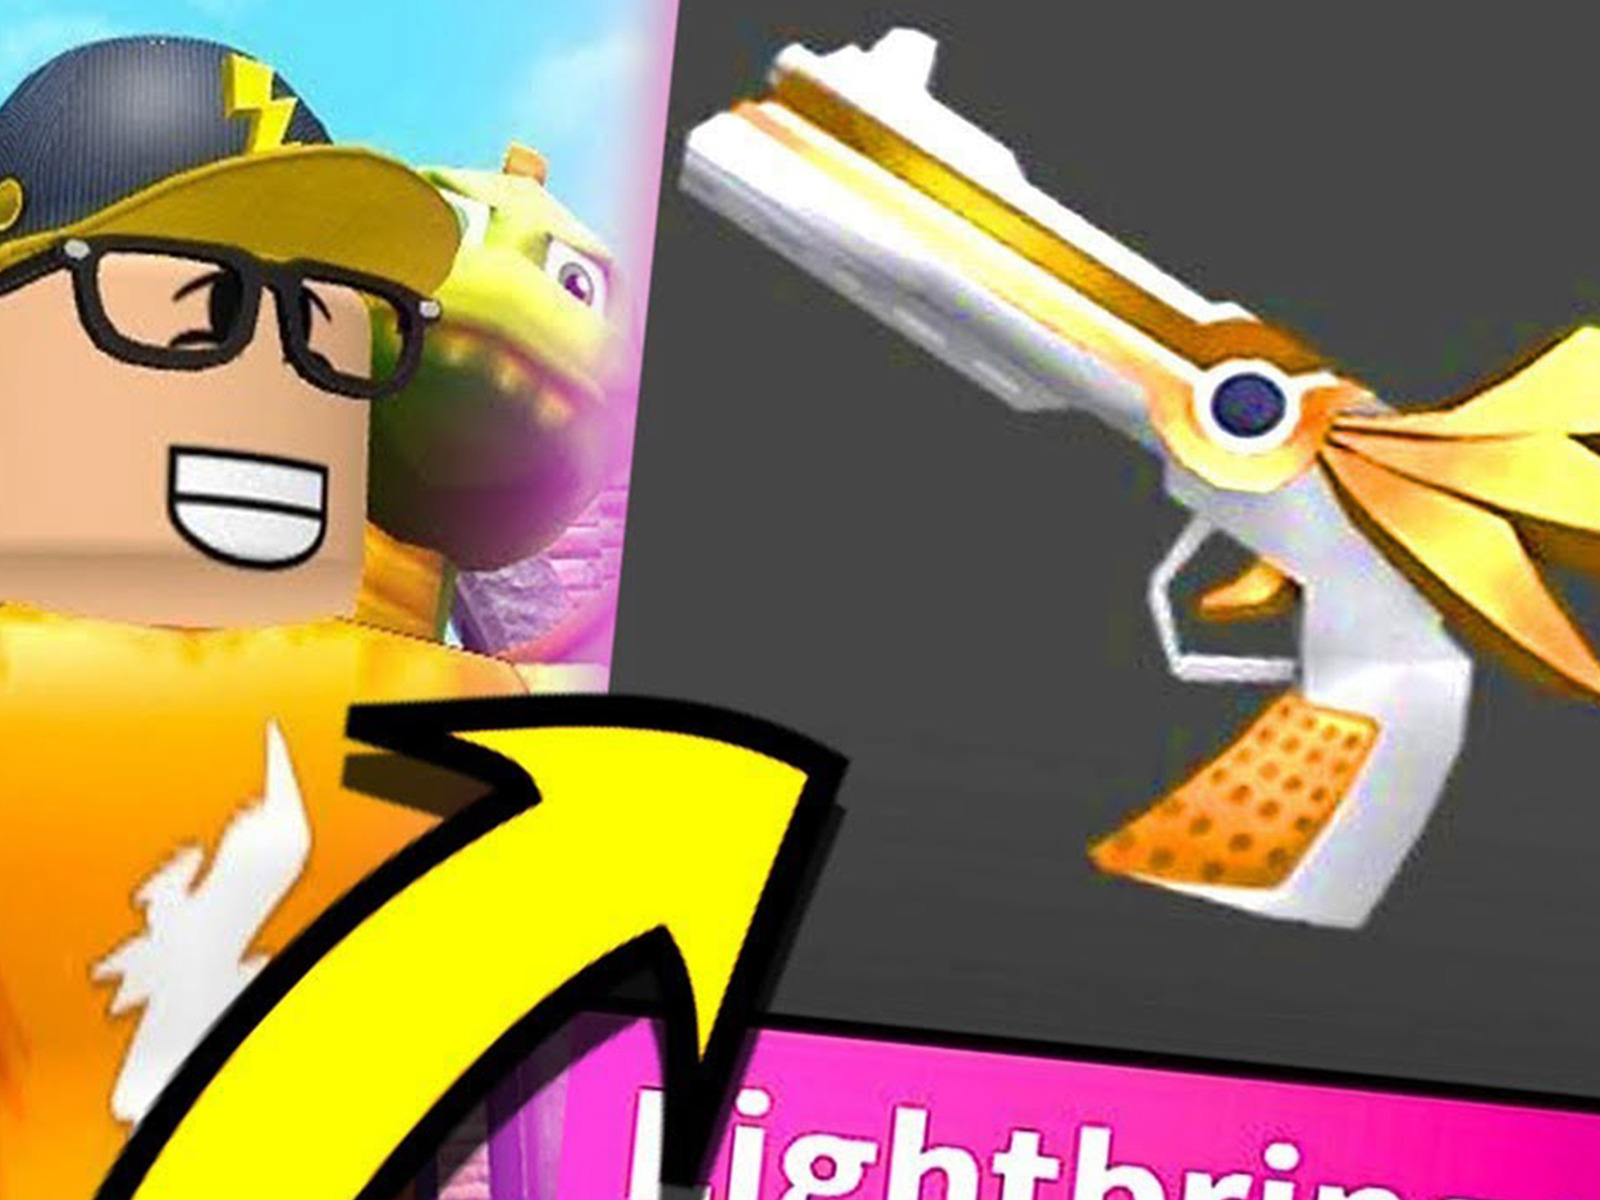 Challenging A Friend For A Chroma Godly Roblox Murder Mystery 2 Prime Video Clip See Deng